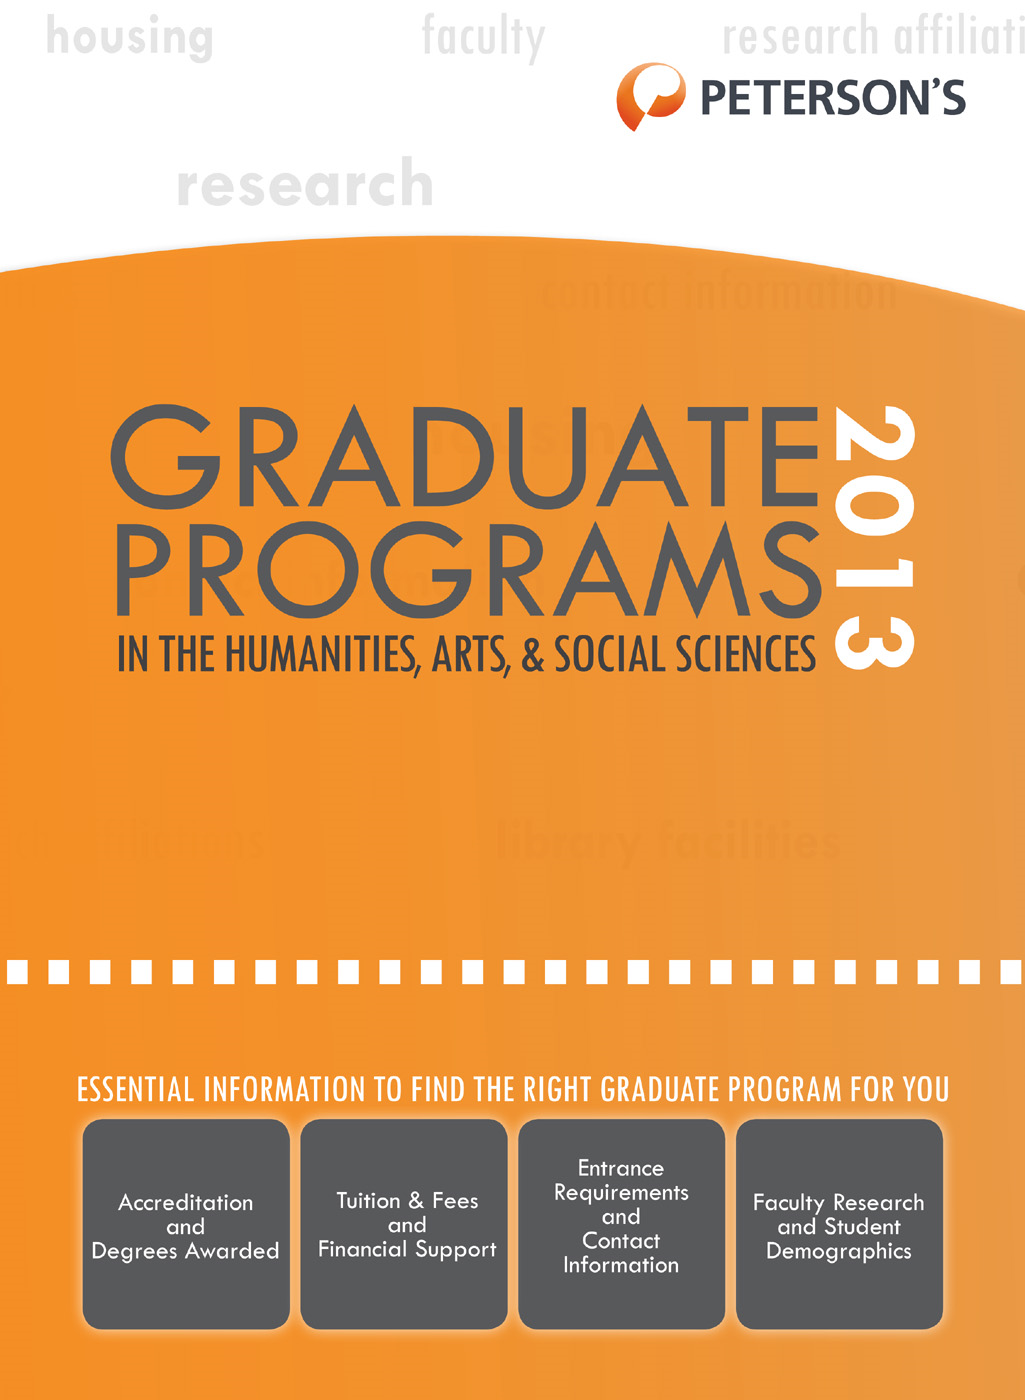 Graduate Programs in the Humanities, Arts & Social Sciences 2013 (Grad 2)